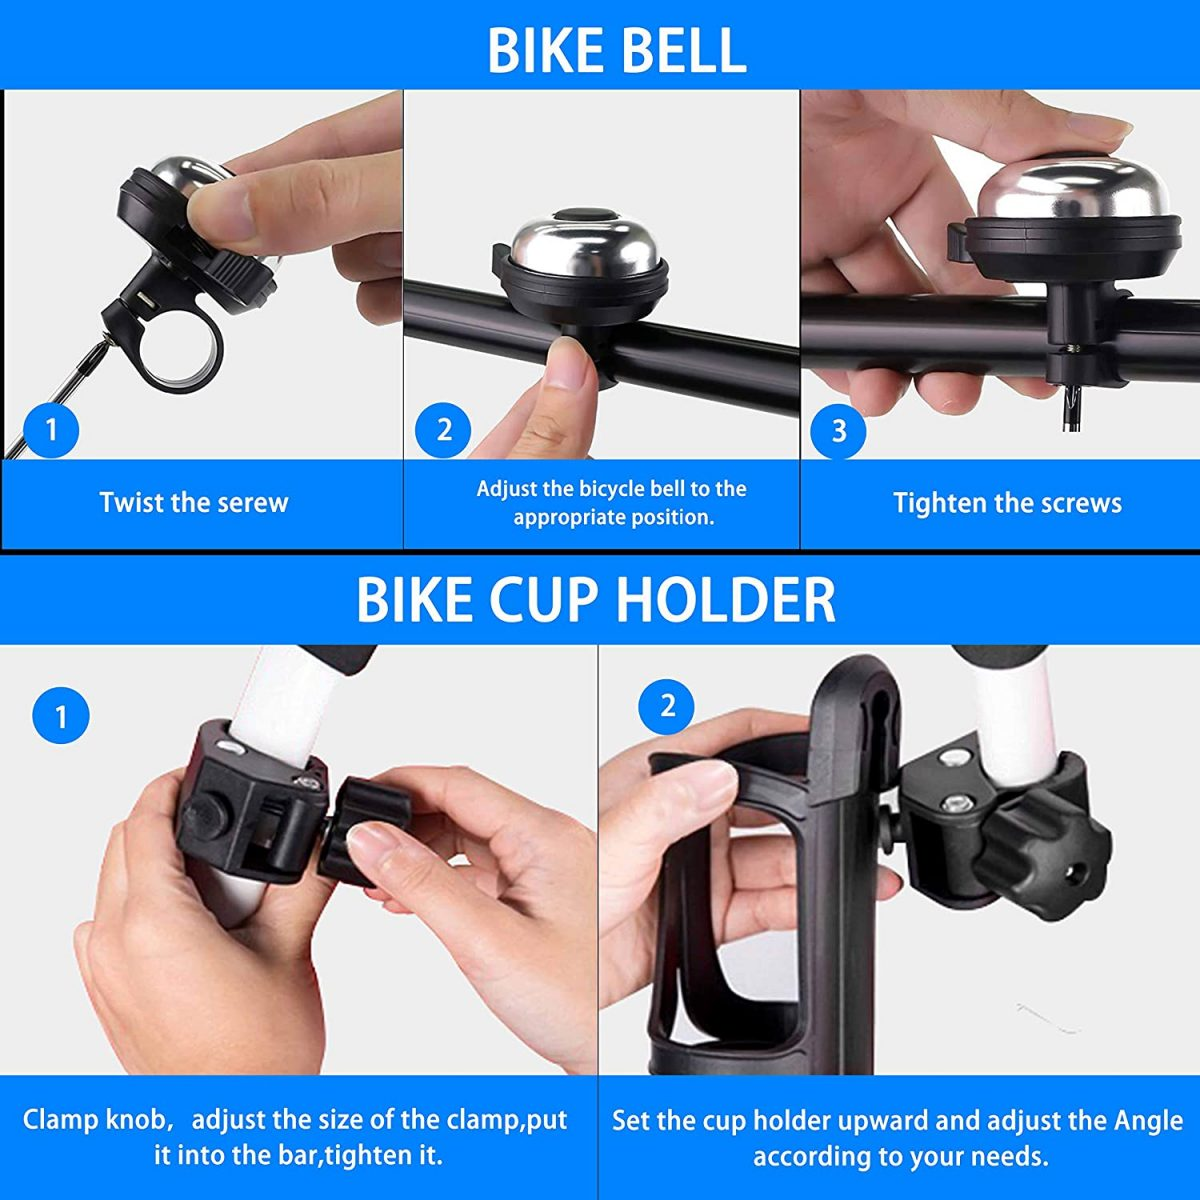 Bicycle Bell Bike Accessories Silicone Phone Holder Secure 3 Pack Bike Water Bottle Holder 360/° Cup Holder Bottle Cage for Bike Motorcycle Stroller Phone Mount Any Smart Phone Aluminum Bike Bell